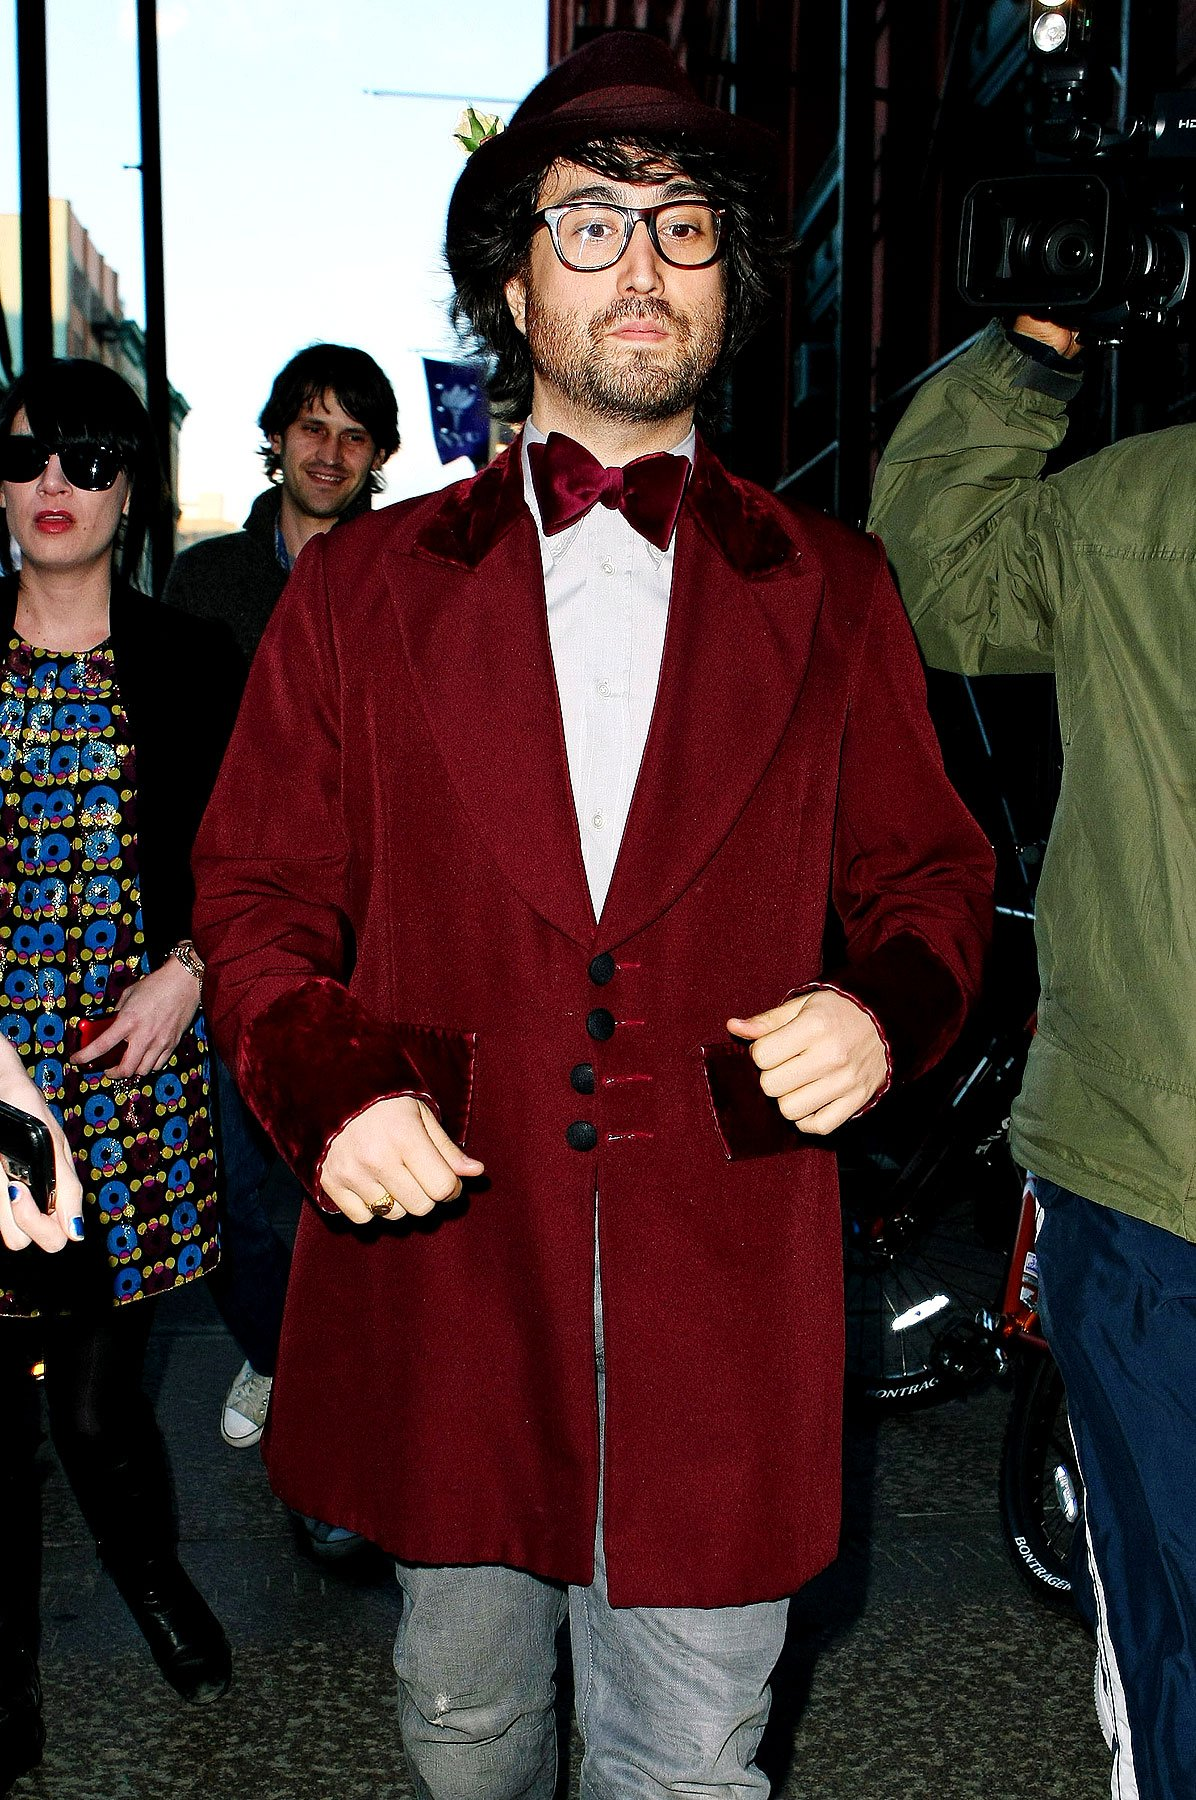 Fashion FAIL: Sean Lennon, Will The Real Willy Wonka Please Stand Up (PHOTOS)